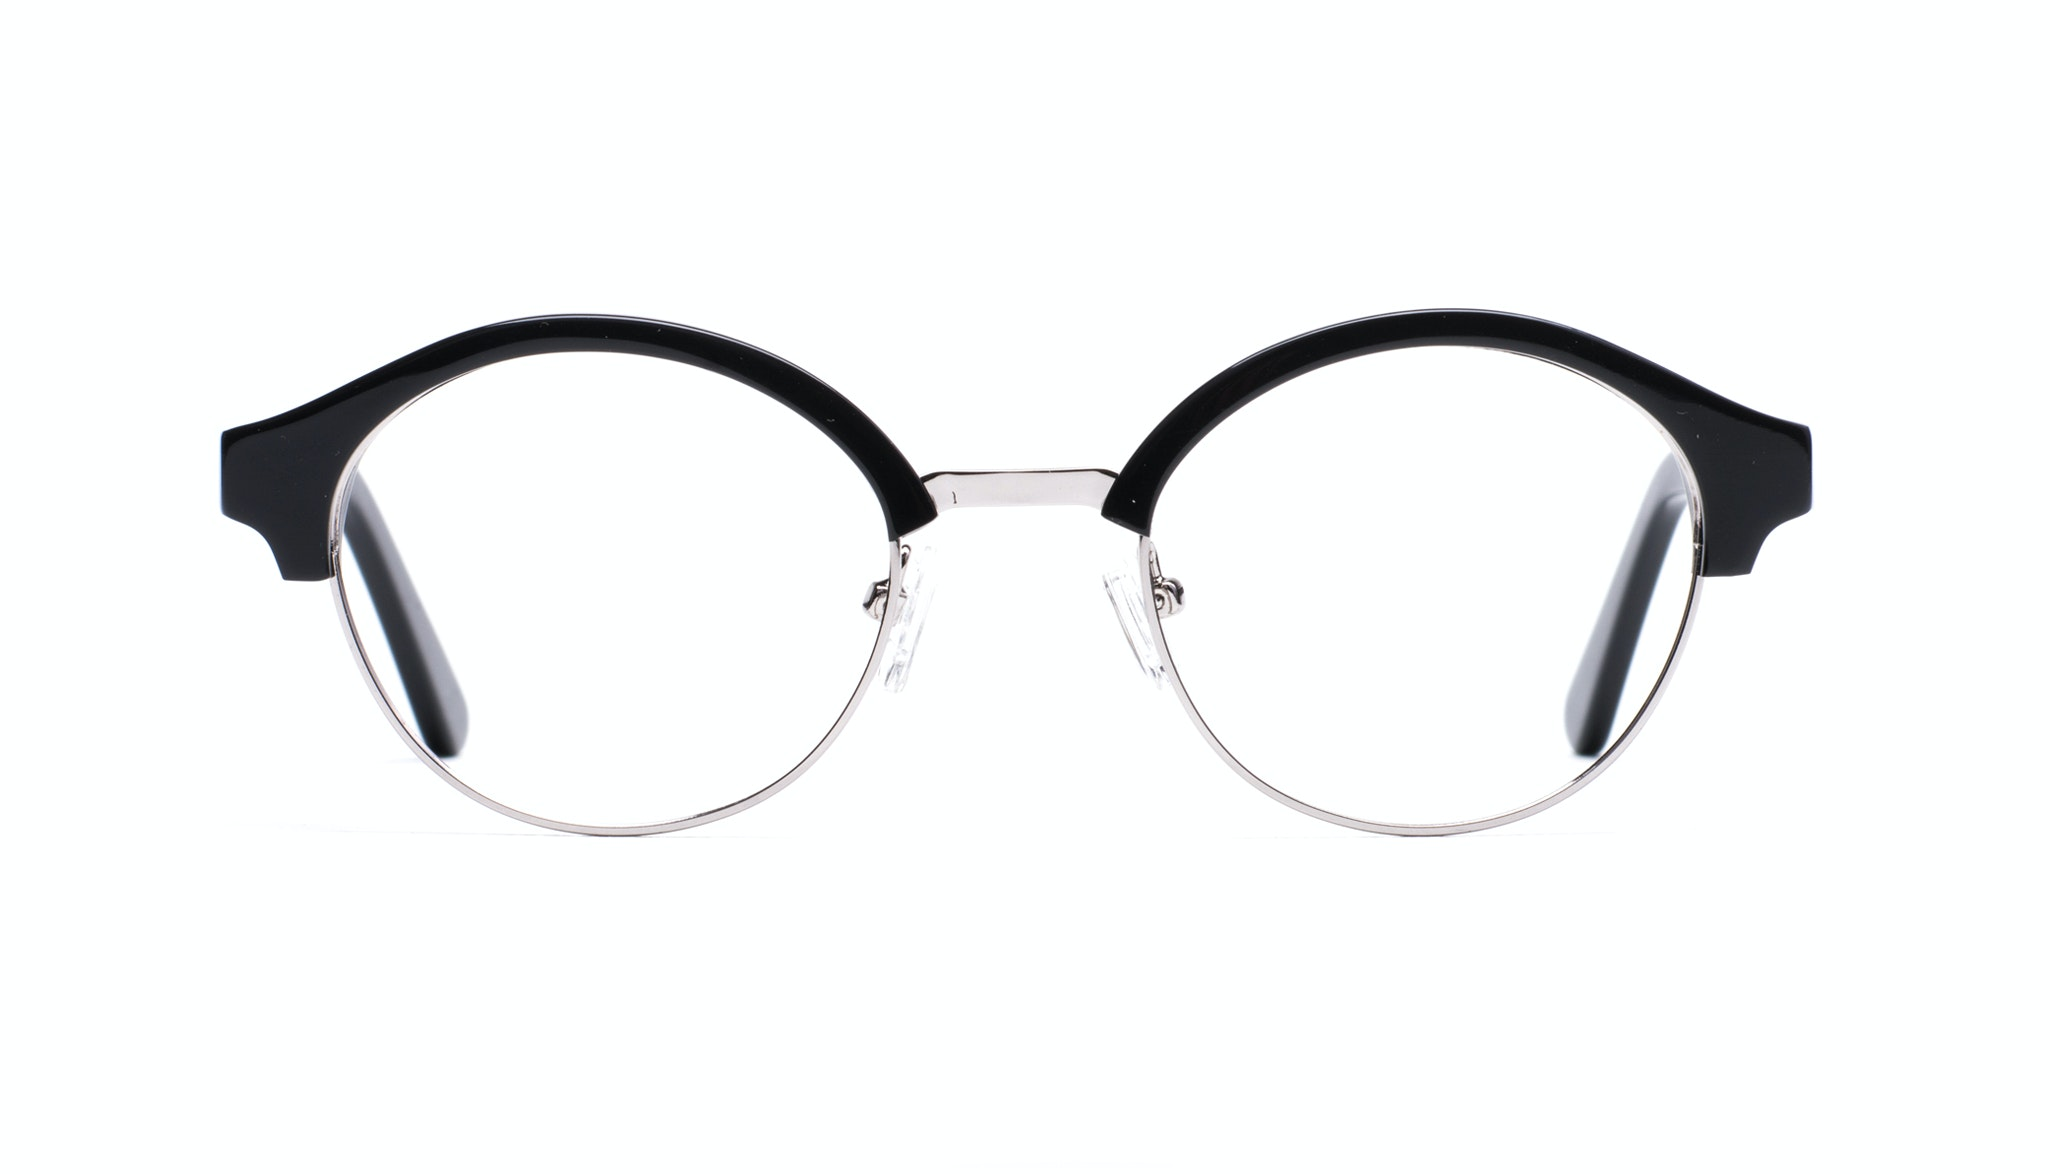 Affordable Fashion Glasses Round Eyeglasses Men Craft Black